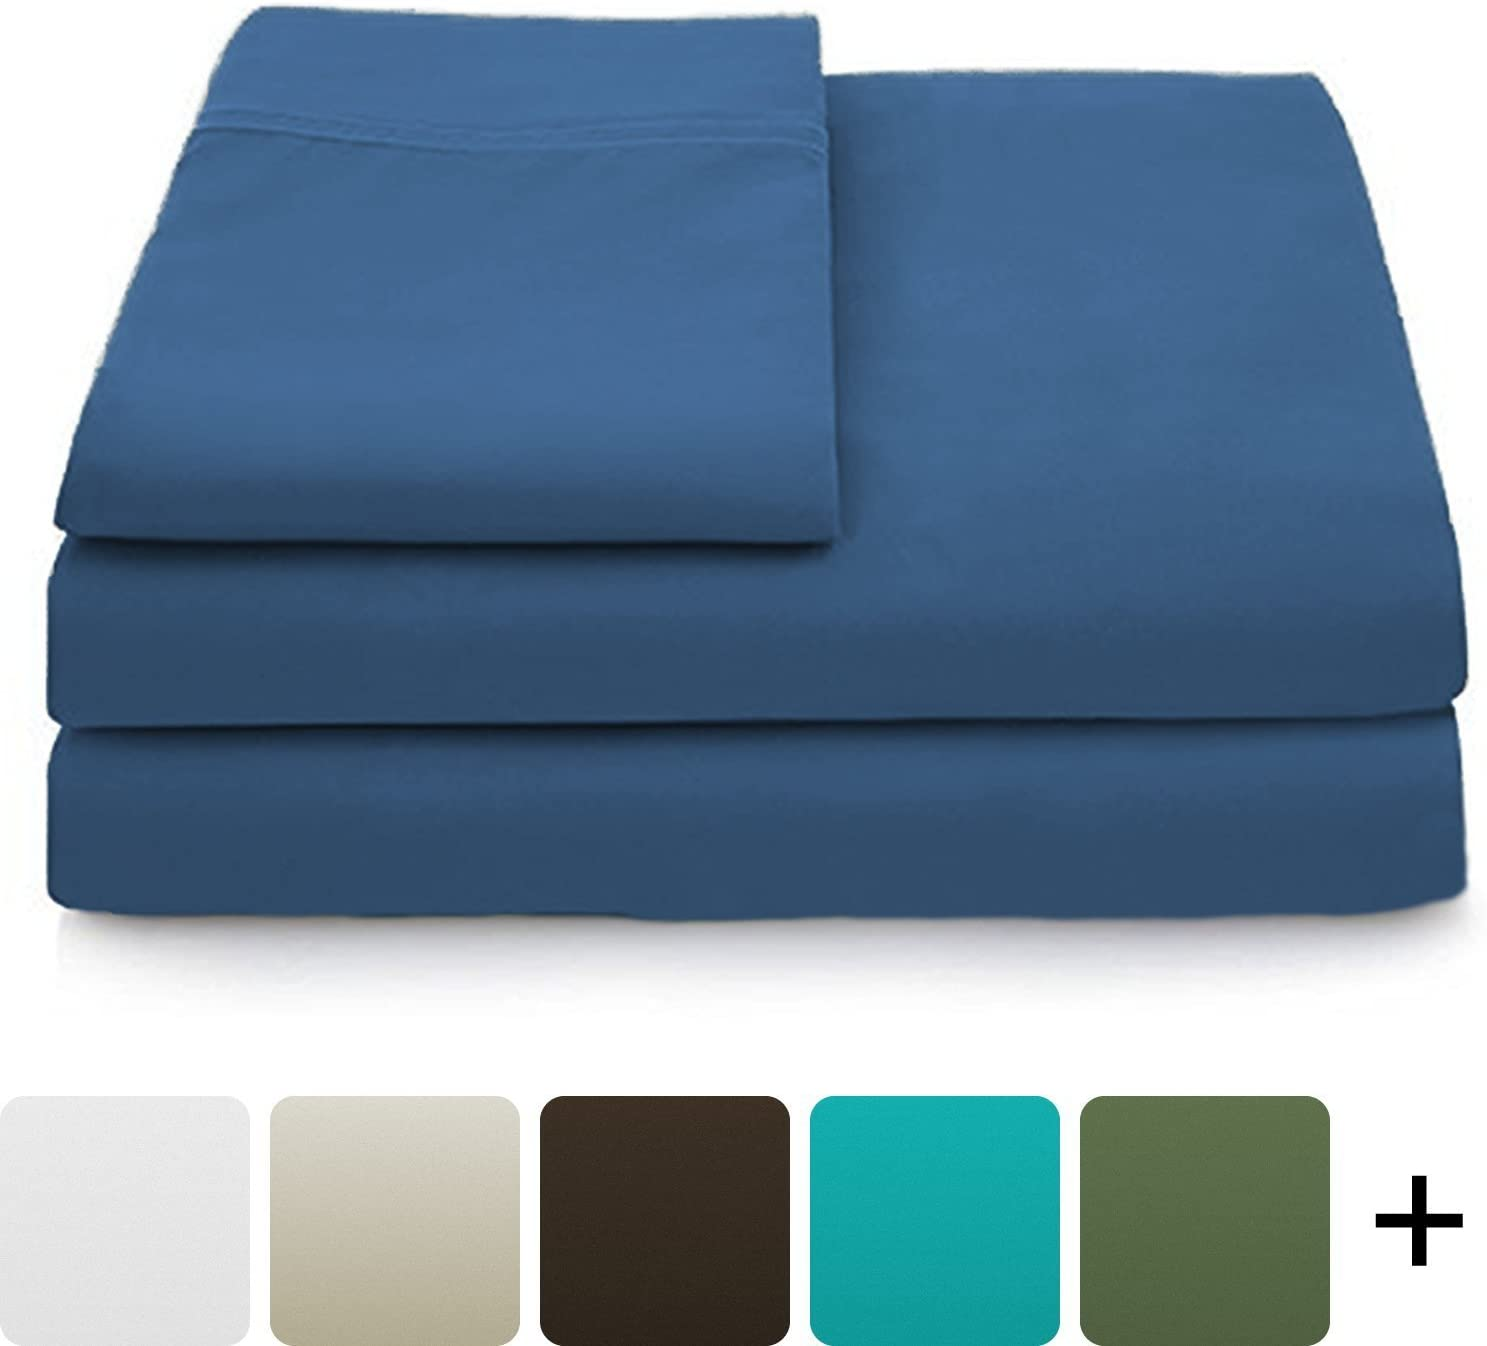 Cosy House Collection Luxury Bamboo Sheets - 5 Piece Bedding Set - High Blend from Natural Bamboo Fiber - Soft Wrinkle Free Fabric - 2 Fitted Sheets, 1 Flat, 2 Pillow Cases - Split King, Royal Blue